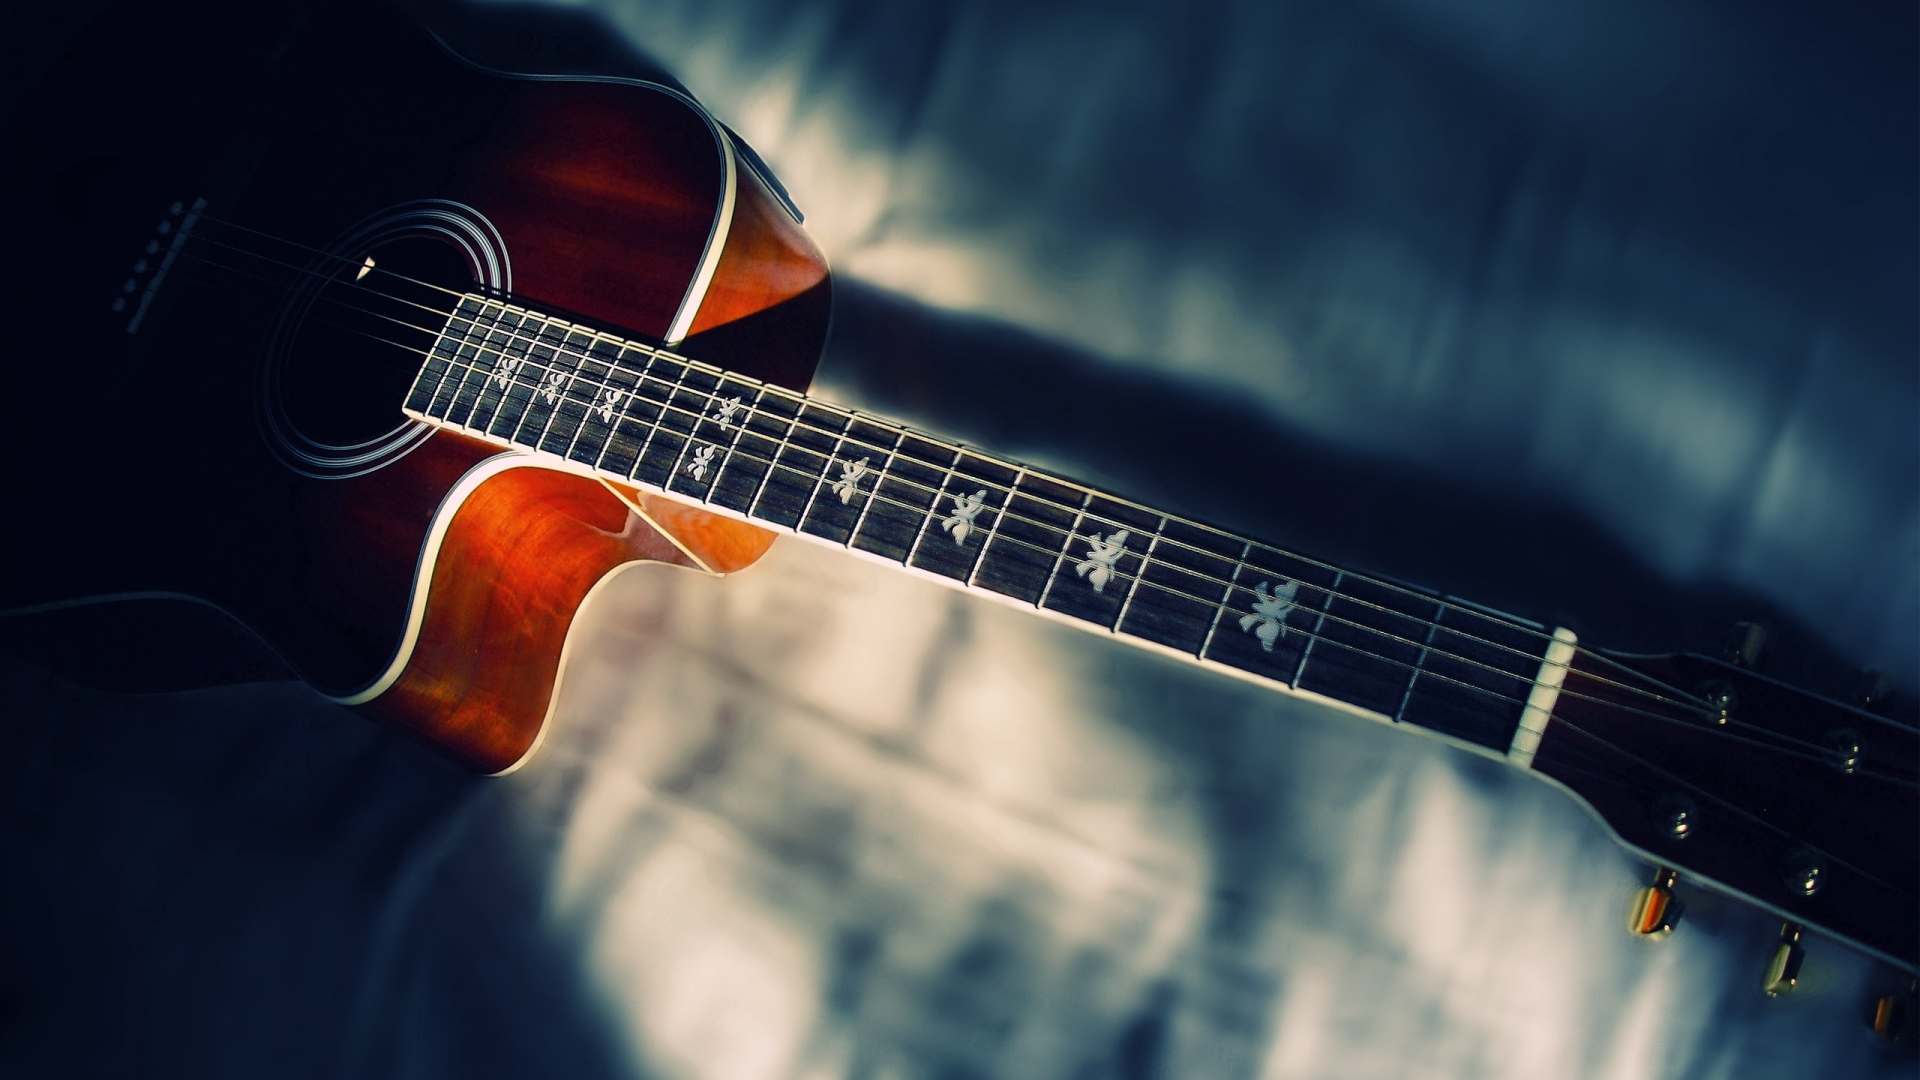 wallpapers of guitars 80 wallpapers hd wallpapers